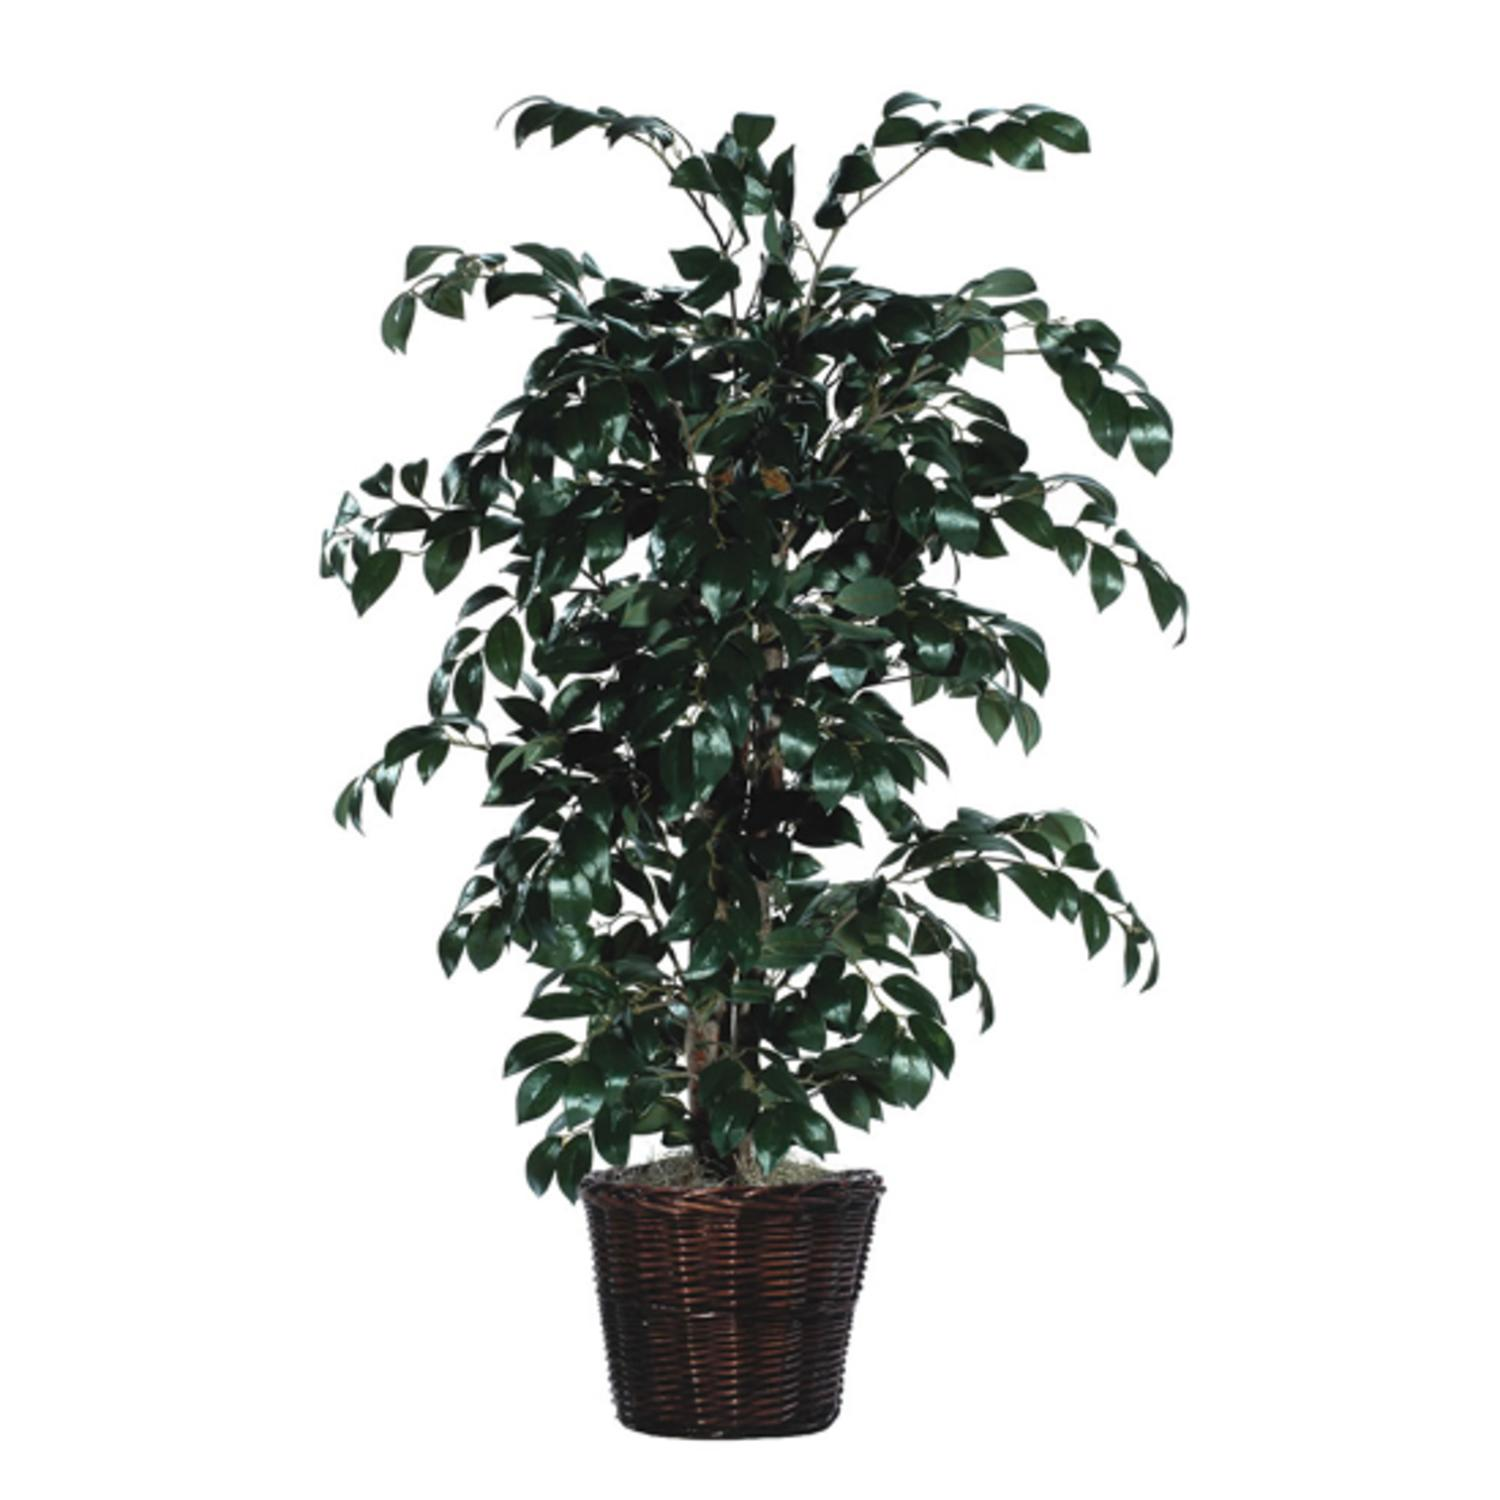 4' Artificial Potted Natural Sakaki Bush - Unlit